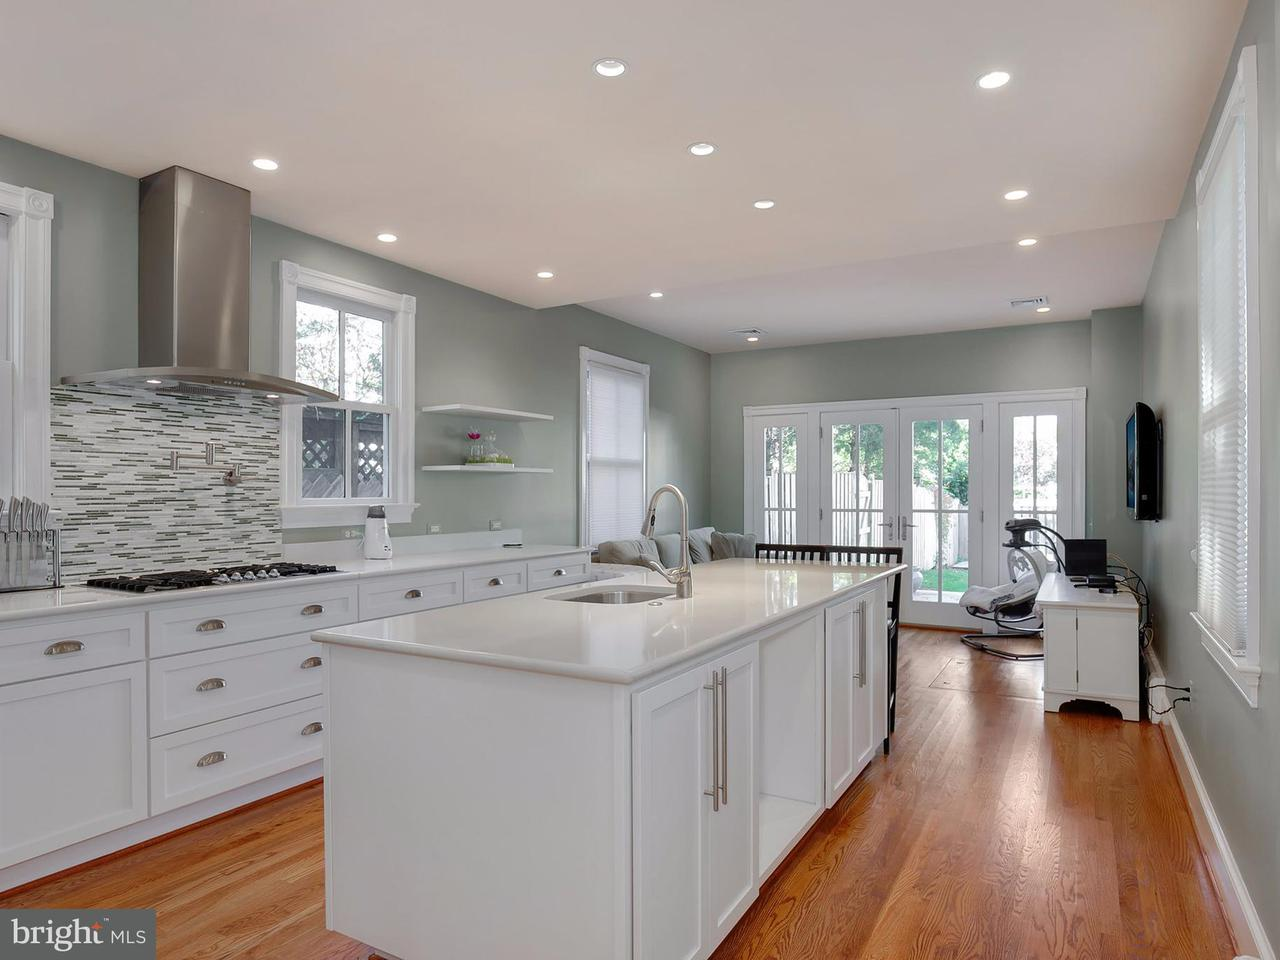 Townhouse for Sale at 210 ALFRED ST N 210 ALFRED ST N Alexandria, Virginia 22314 United States